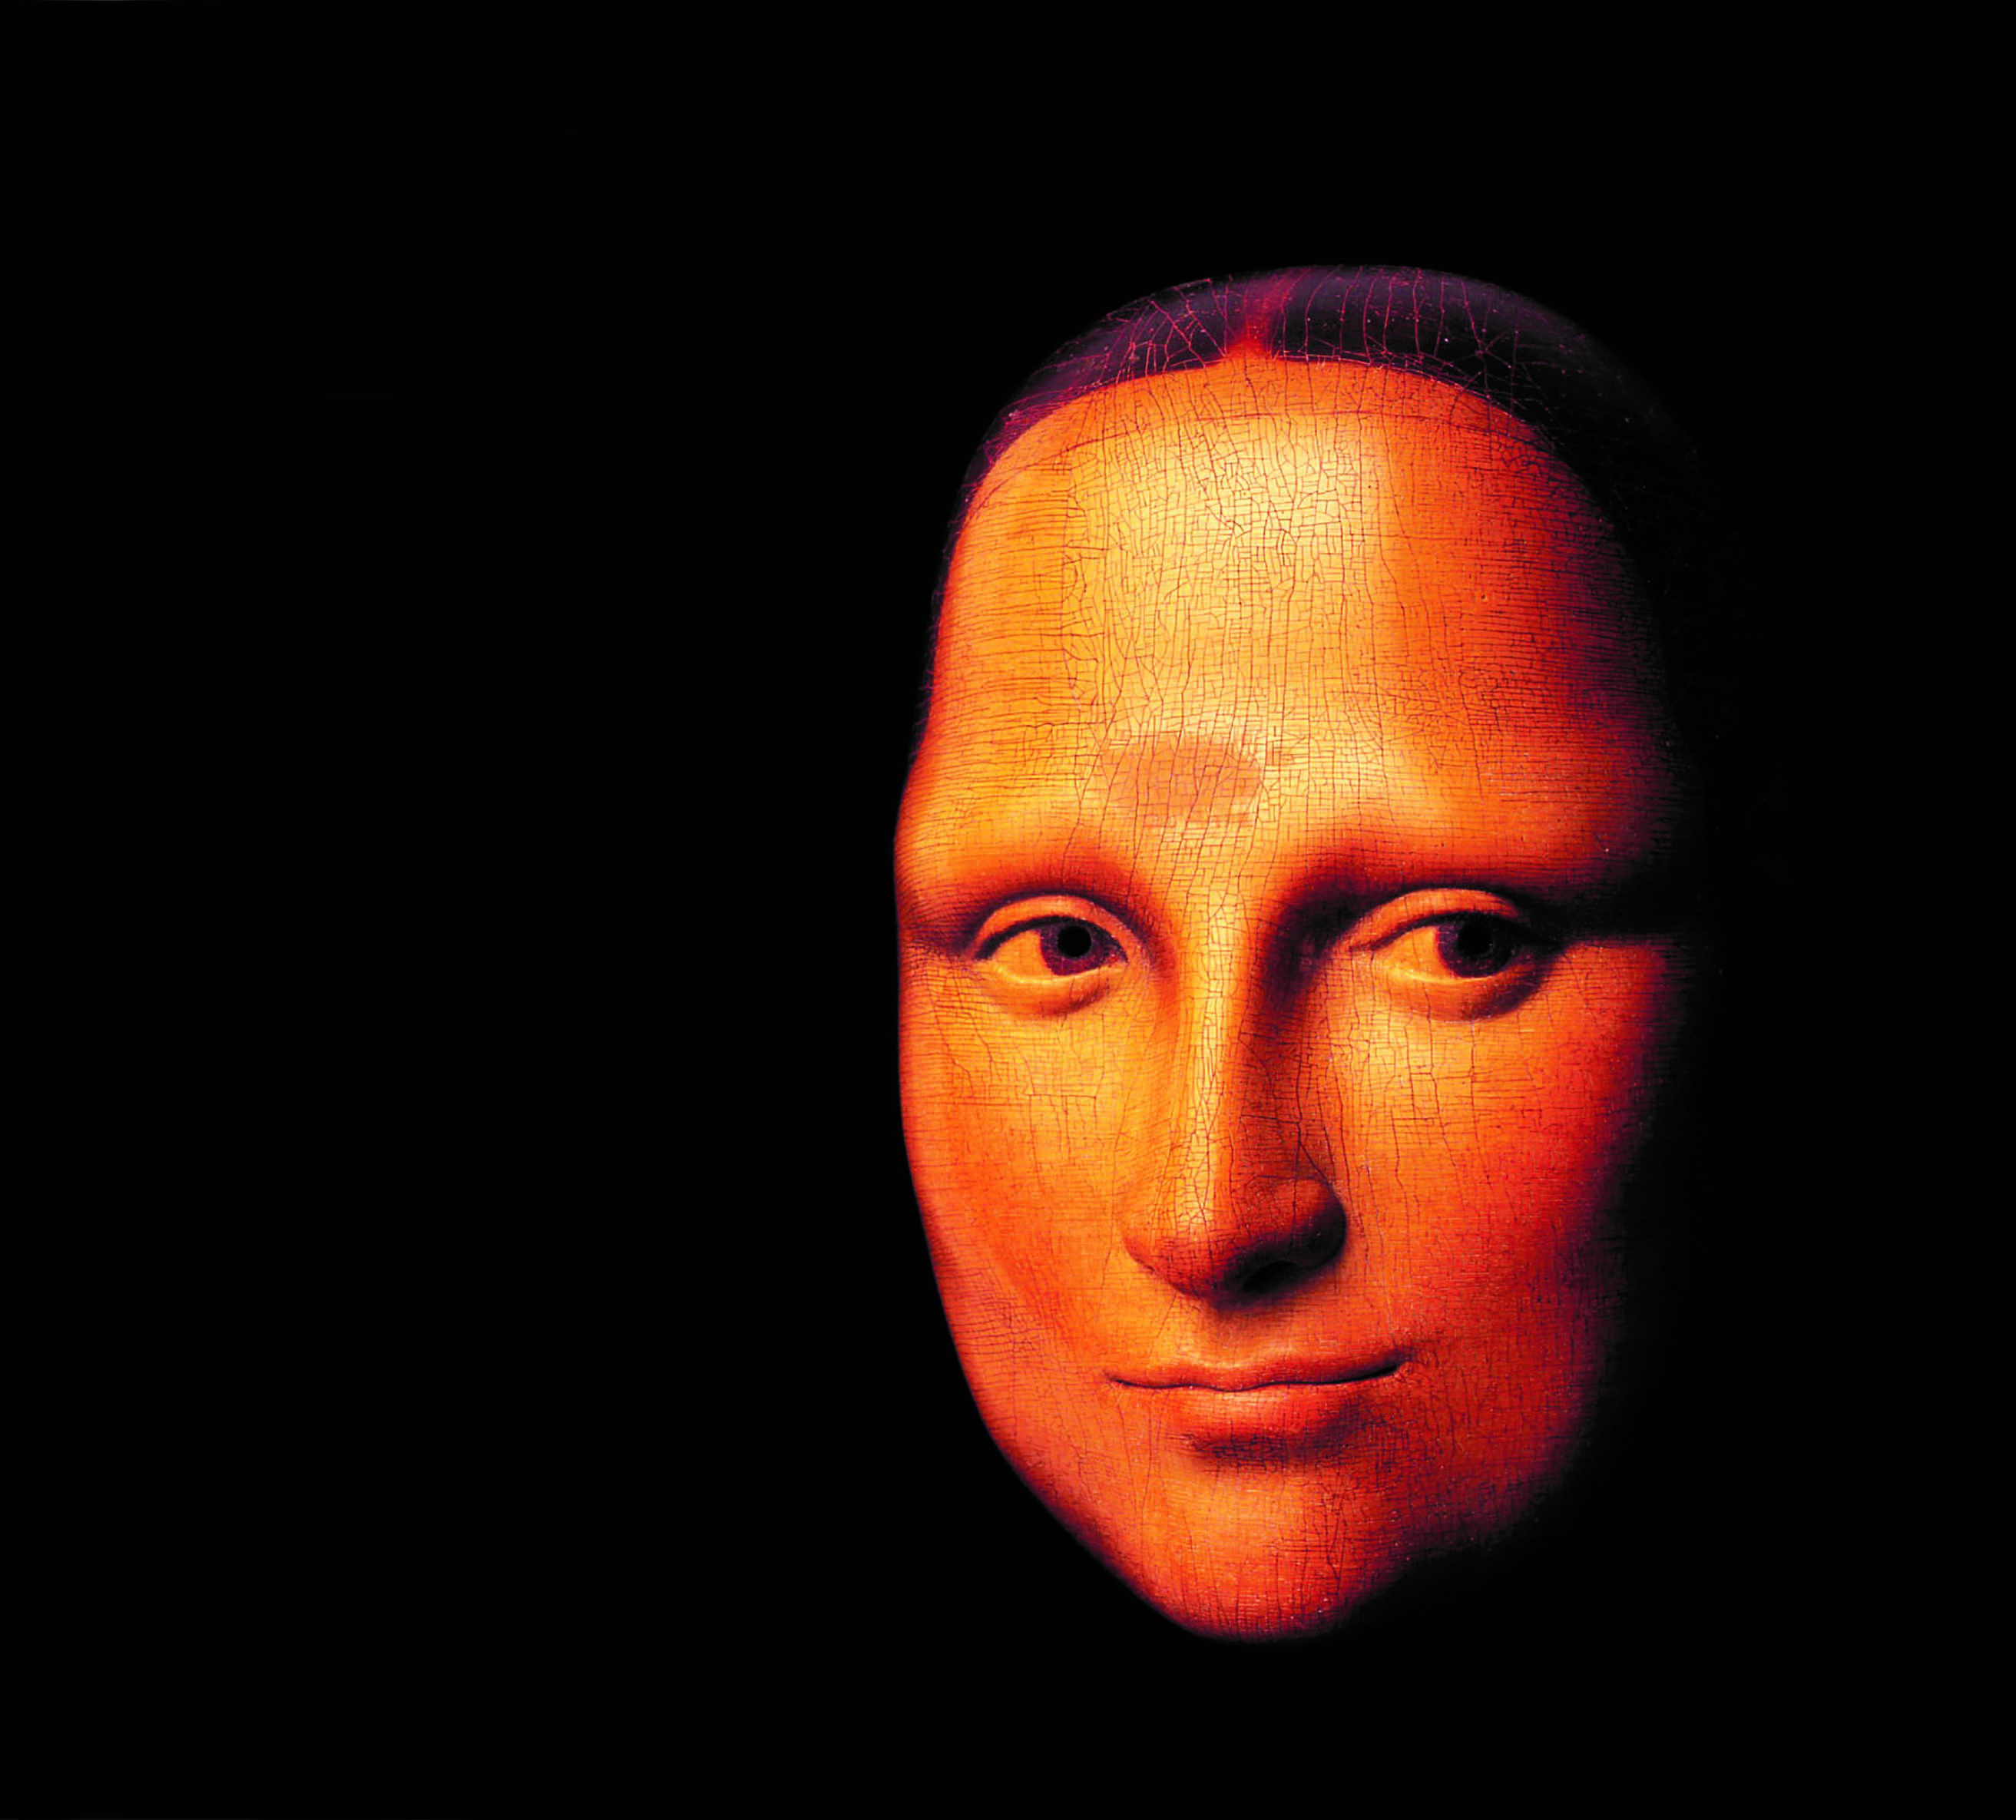 Mona Lisa 3D Mask